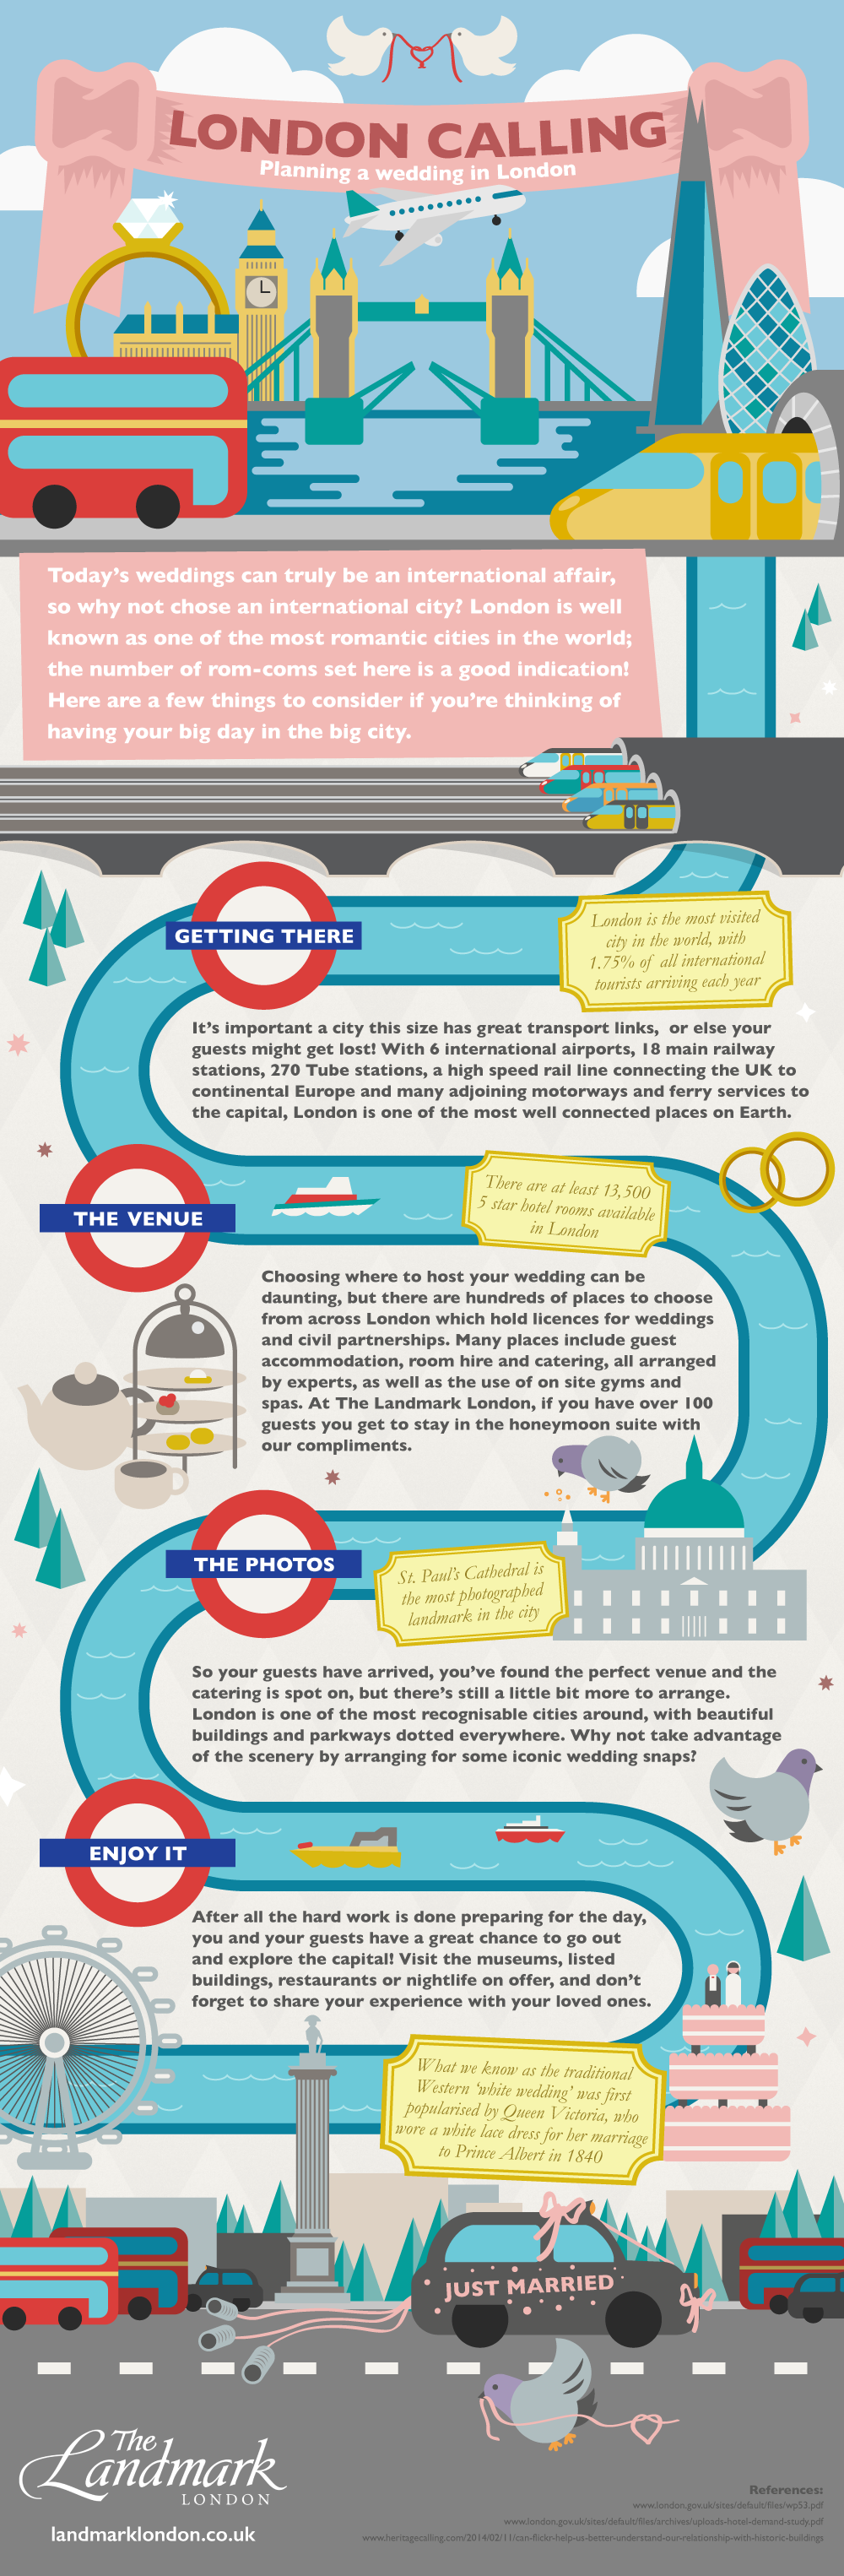 landmark wedding infographic seo content